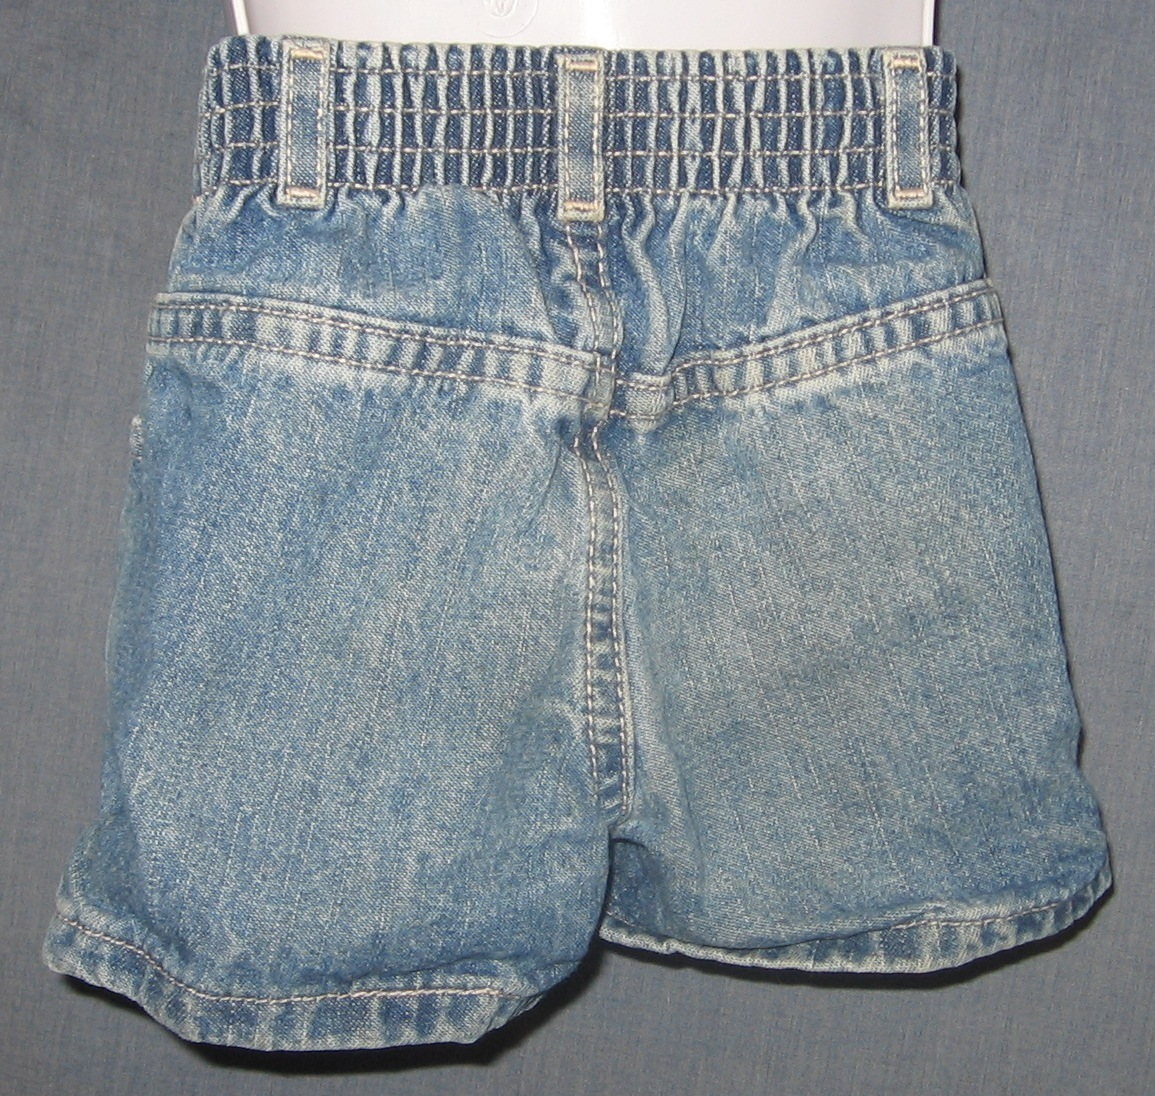 Dora_vest_24m_arizona_shorts_12m_010